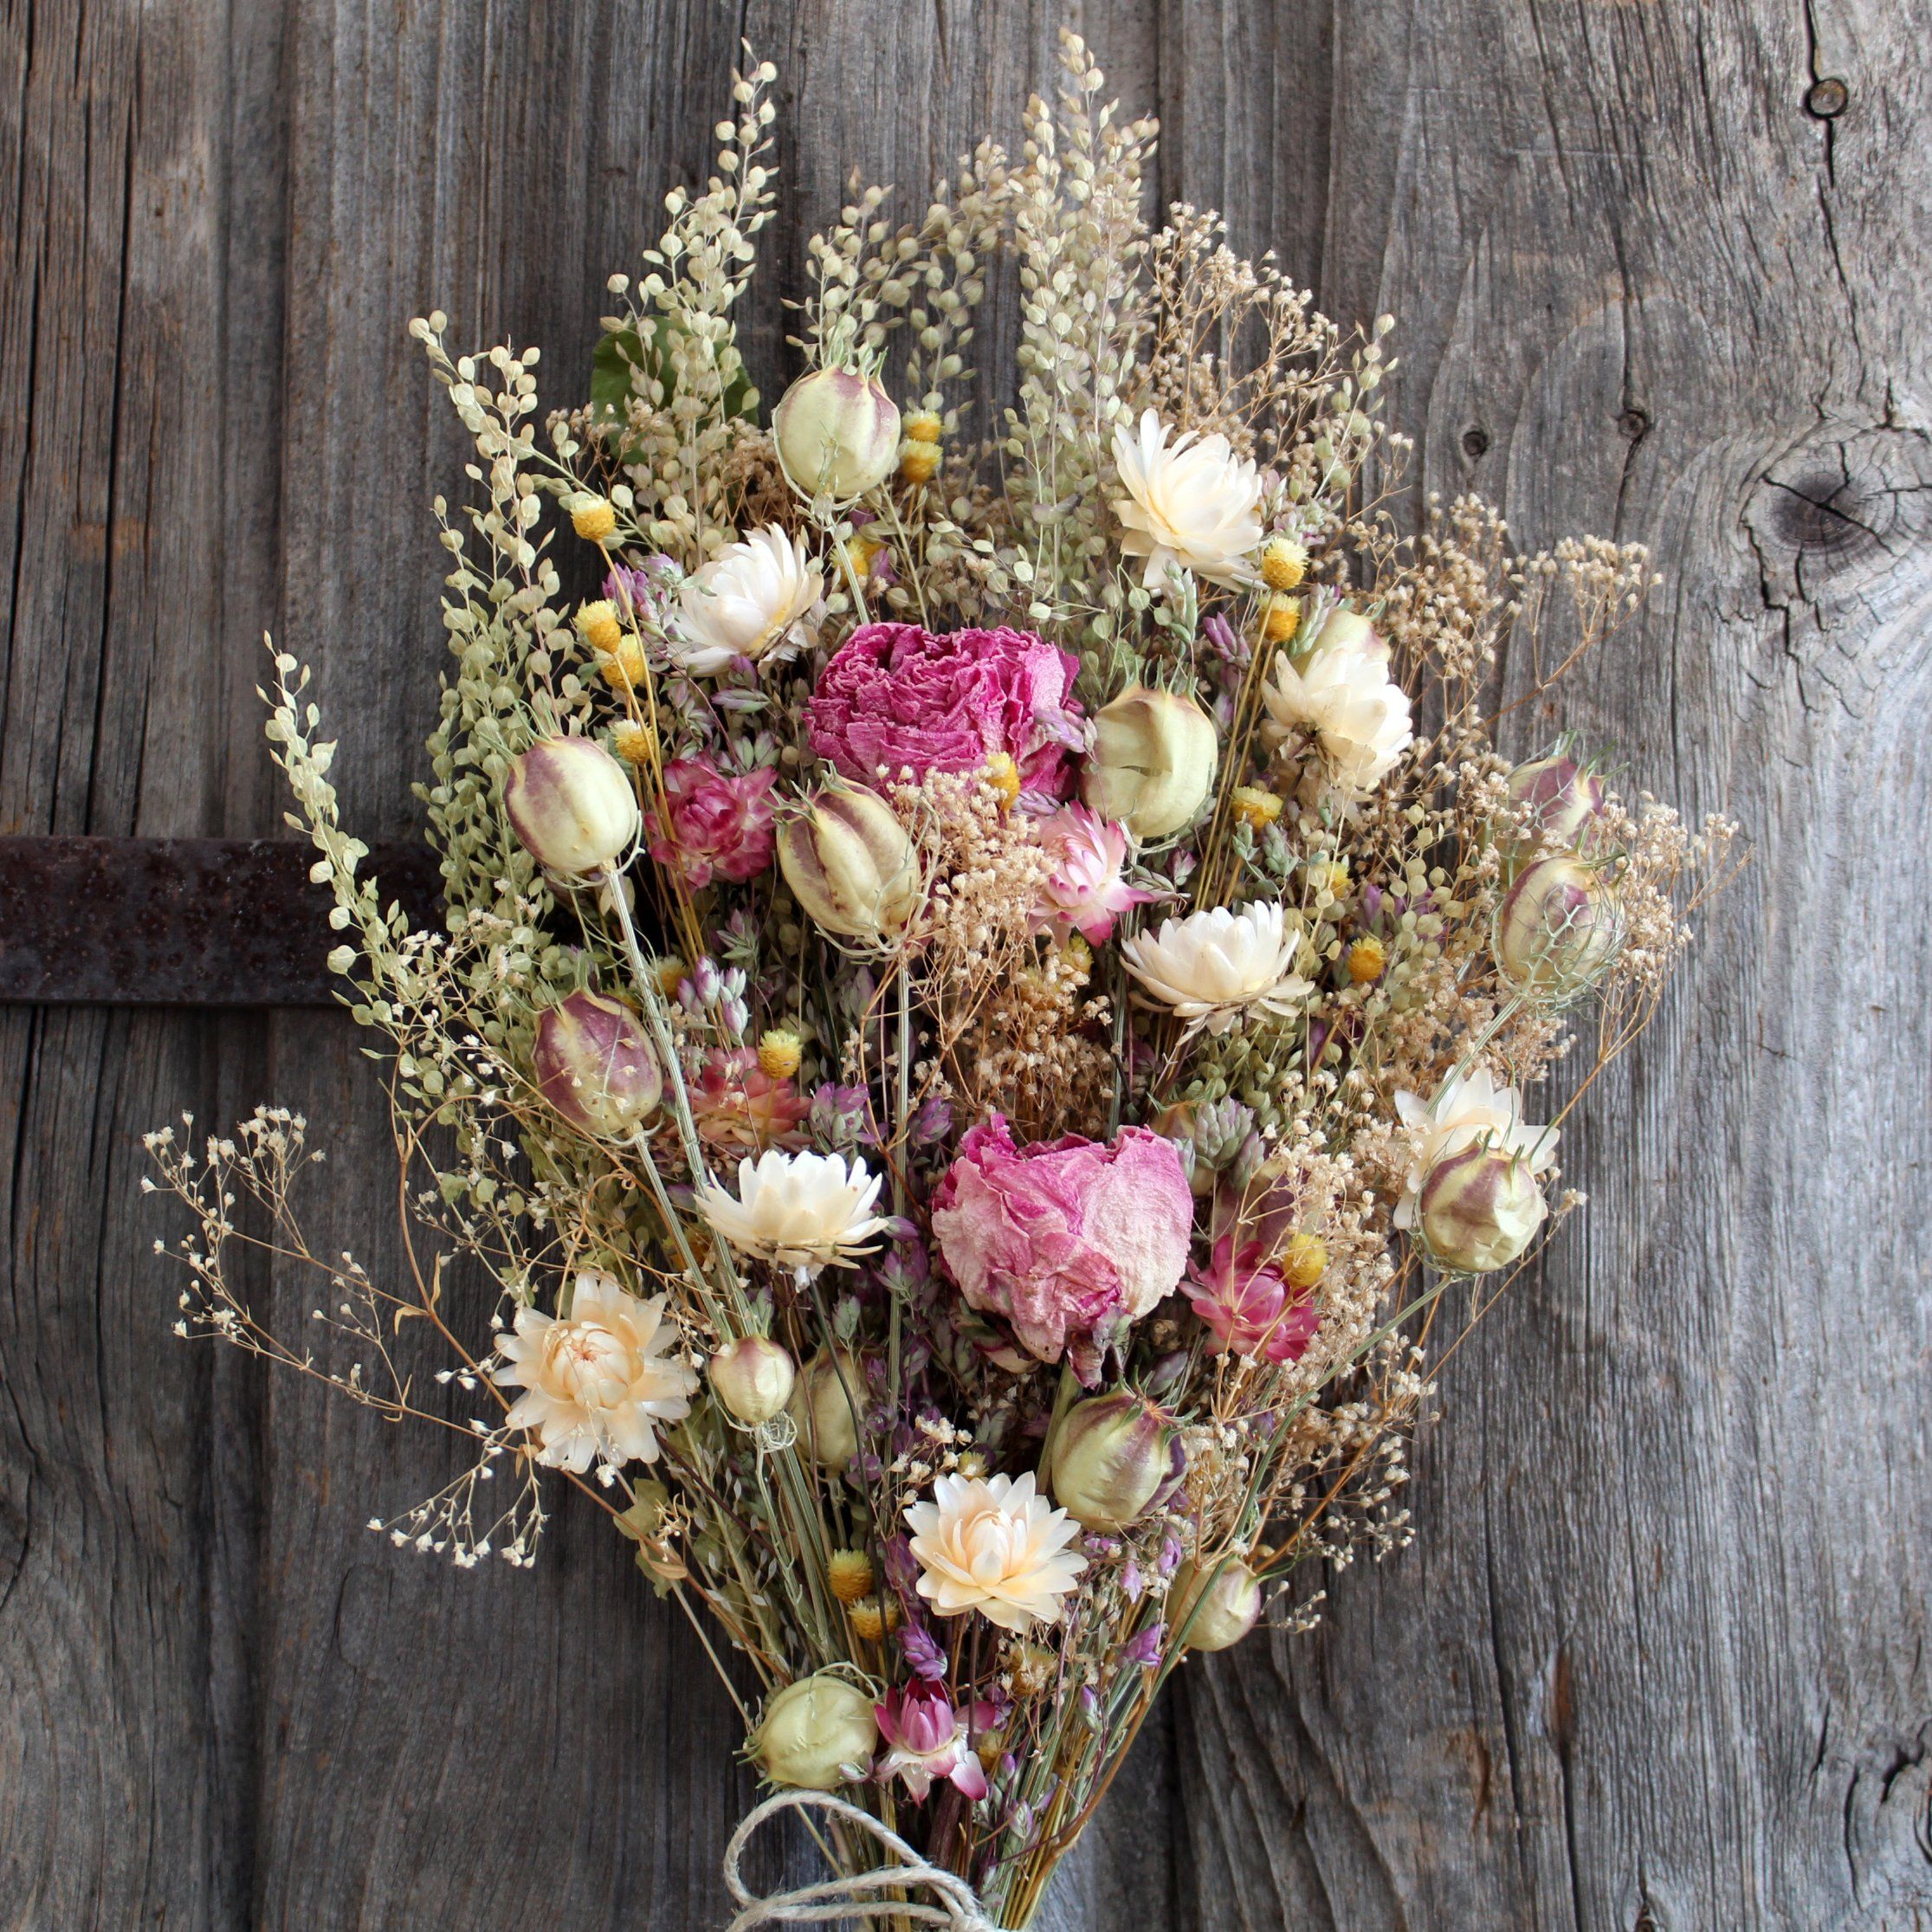 Dried Flower Bouquet Pink Peonies Bridal Or Home Decor Dried Flowers Dried Flower Bouquet Flower Bouquet Wedding